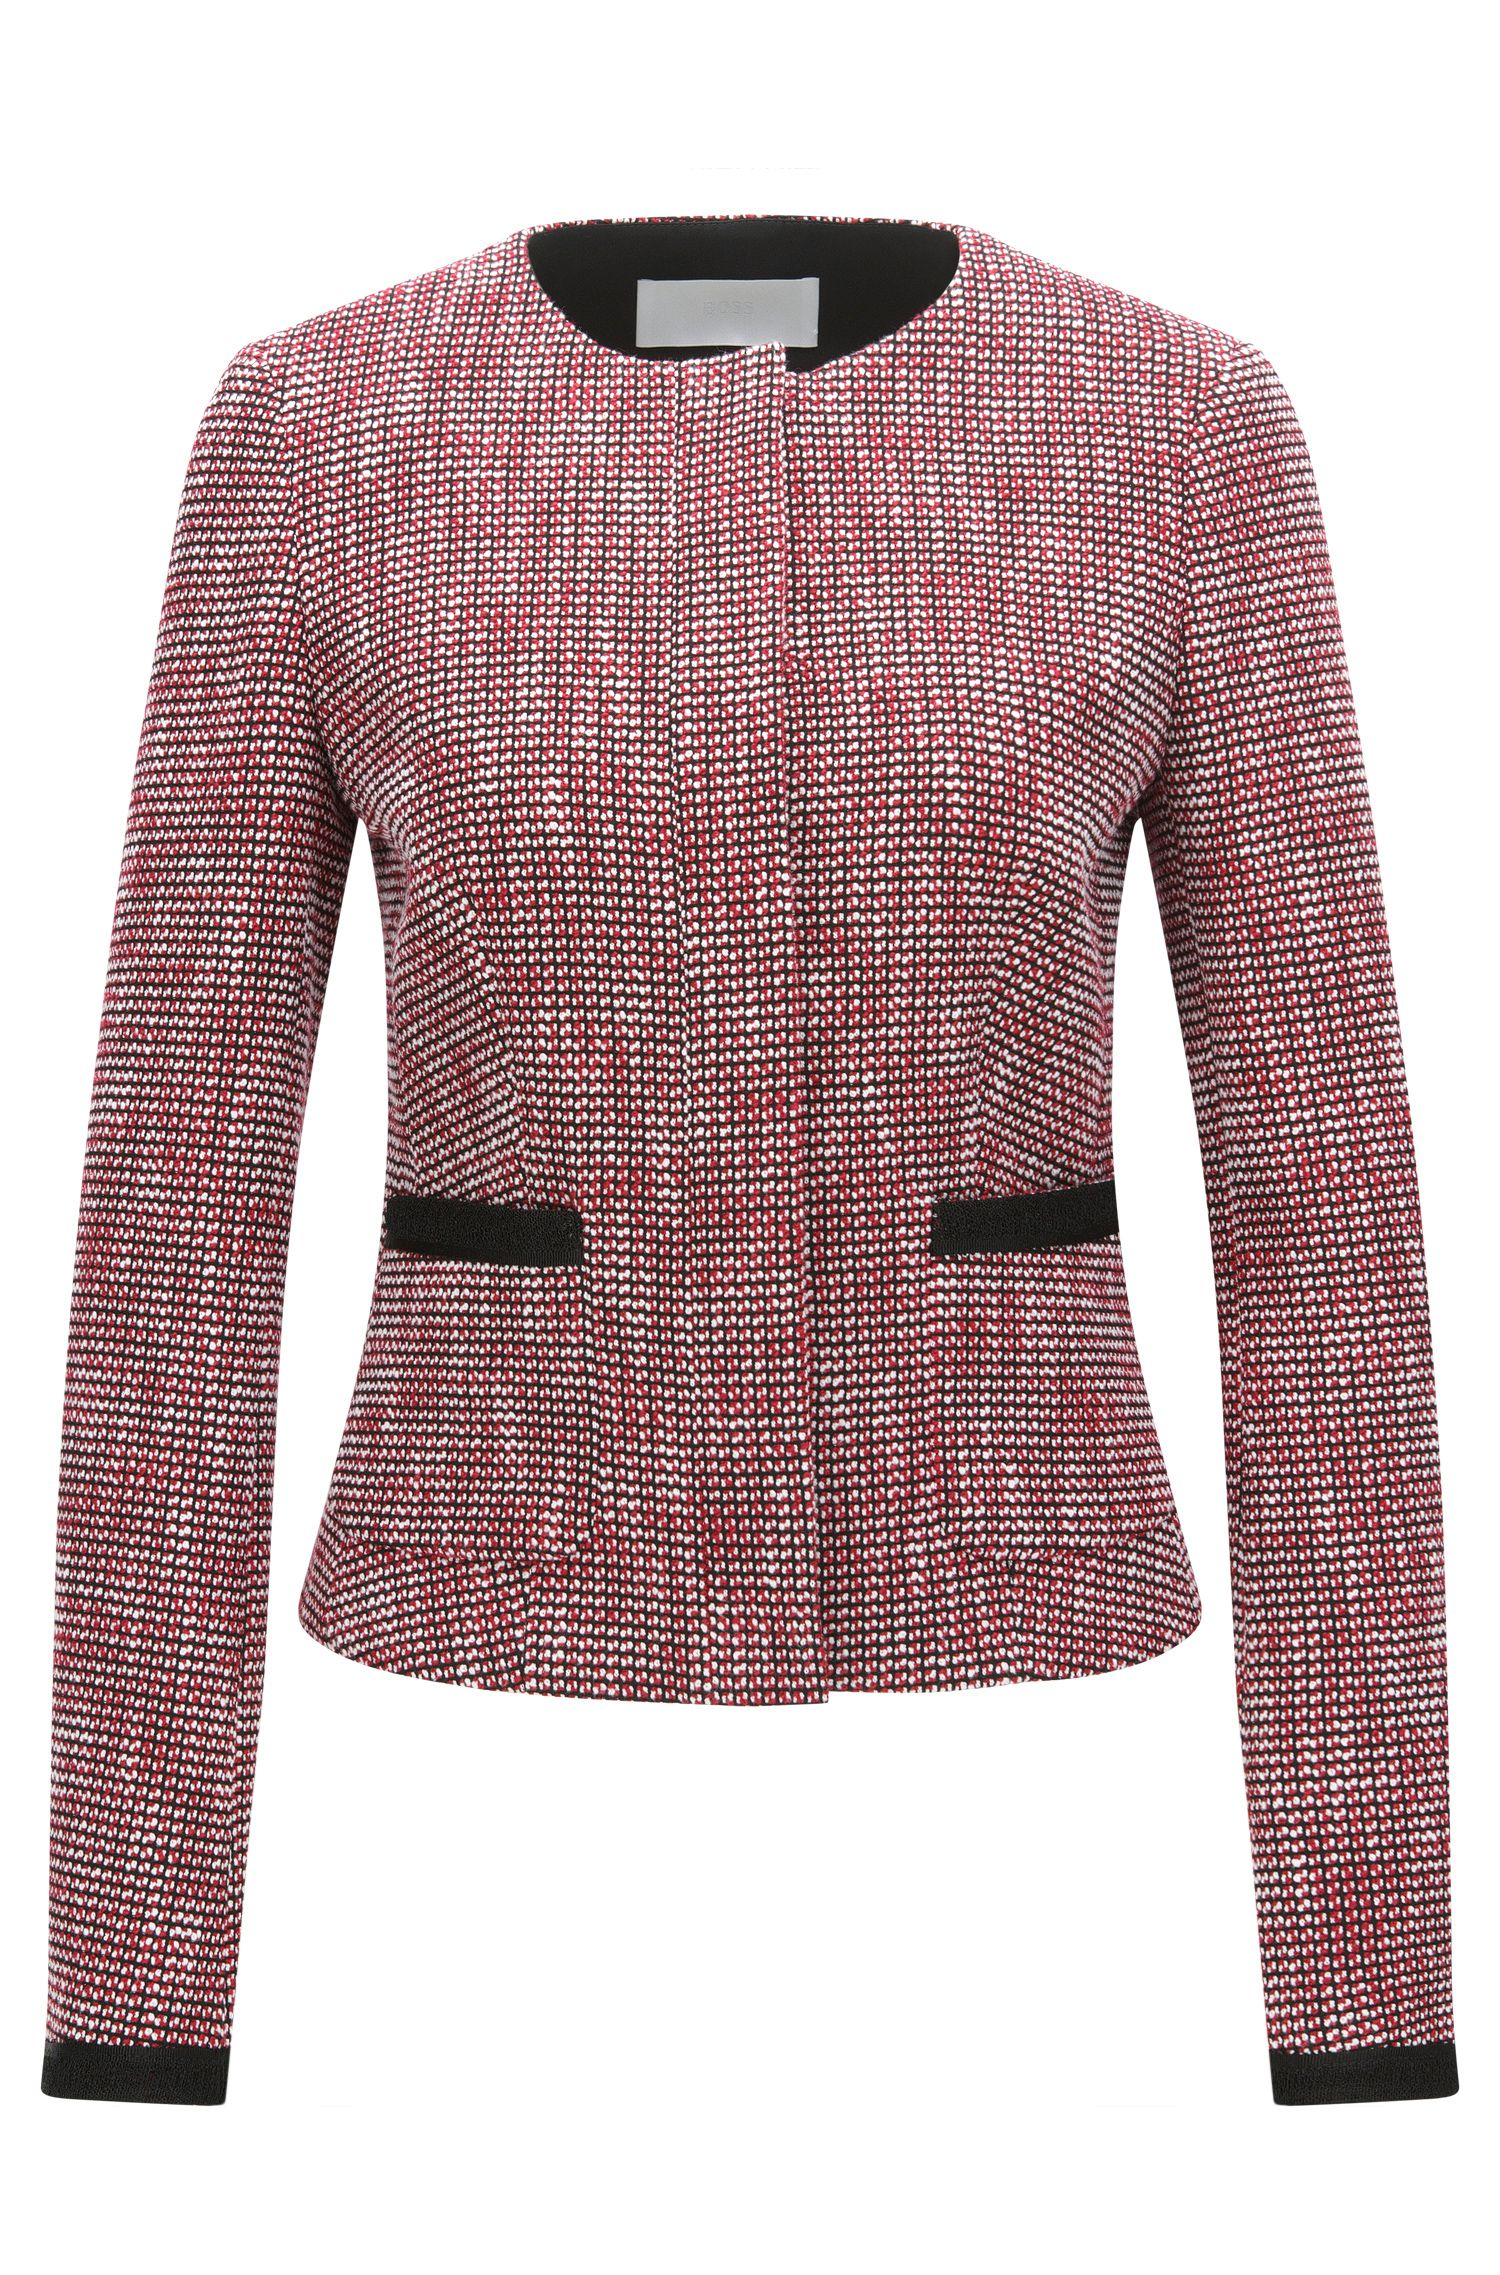 Veste Regular Fit ajustée en jacquard multicolore